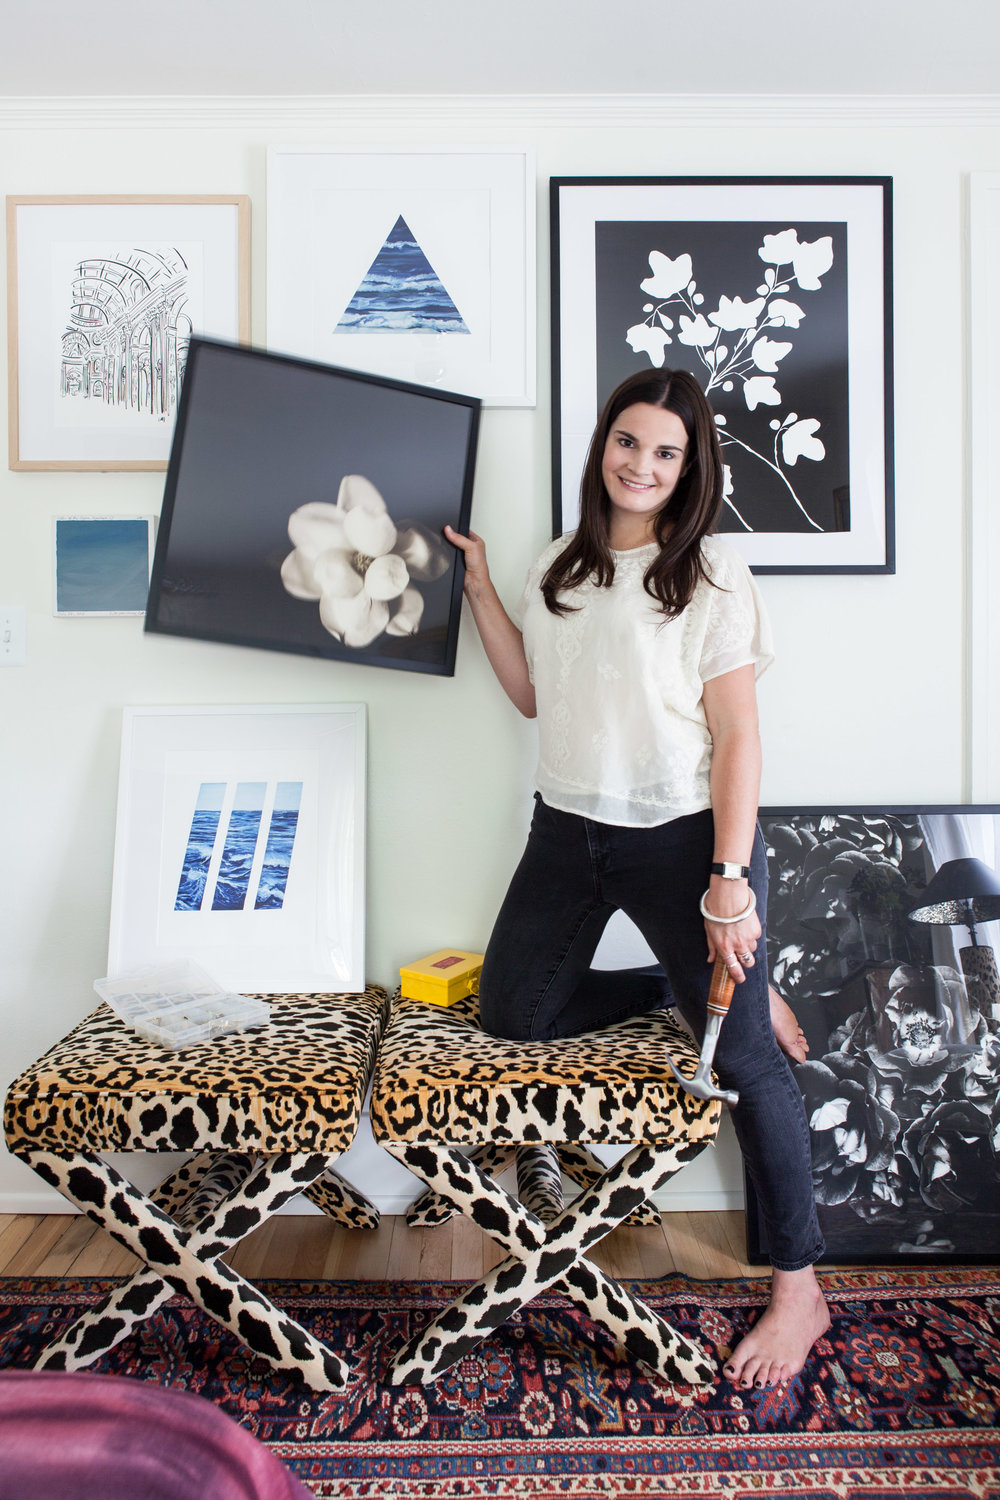 Michelle at home with a collection of pieces from Artfully Walls. Photo by Marta Xochilt Perez.